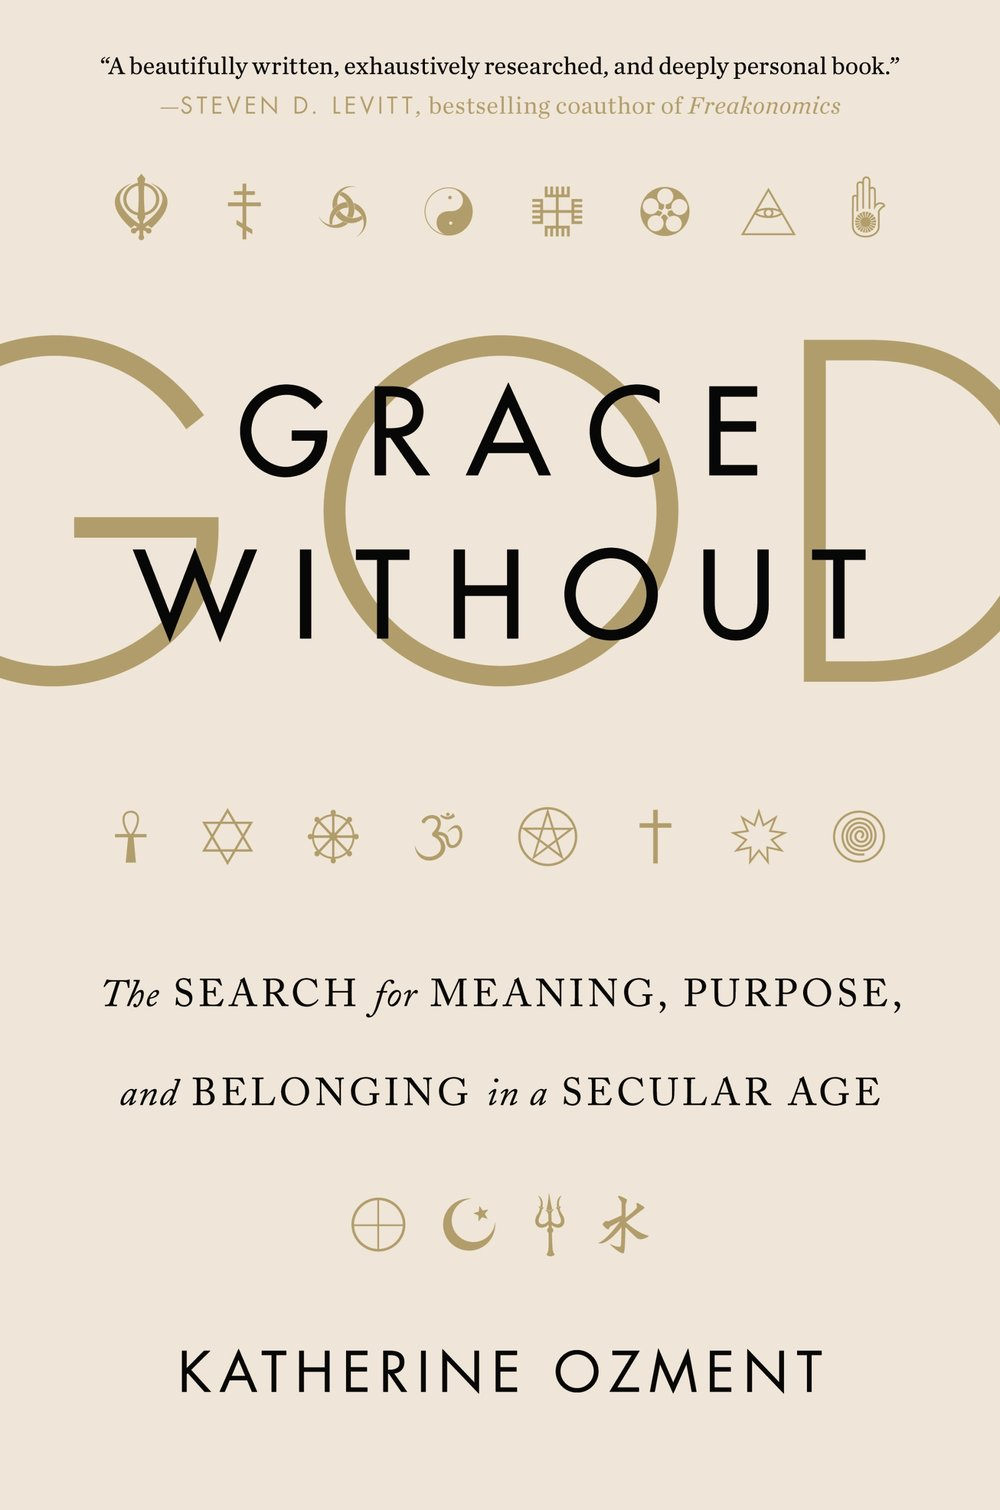 Grace without god book cover